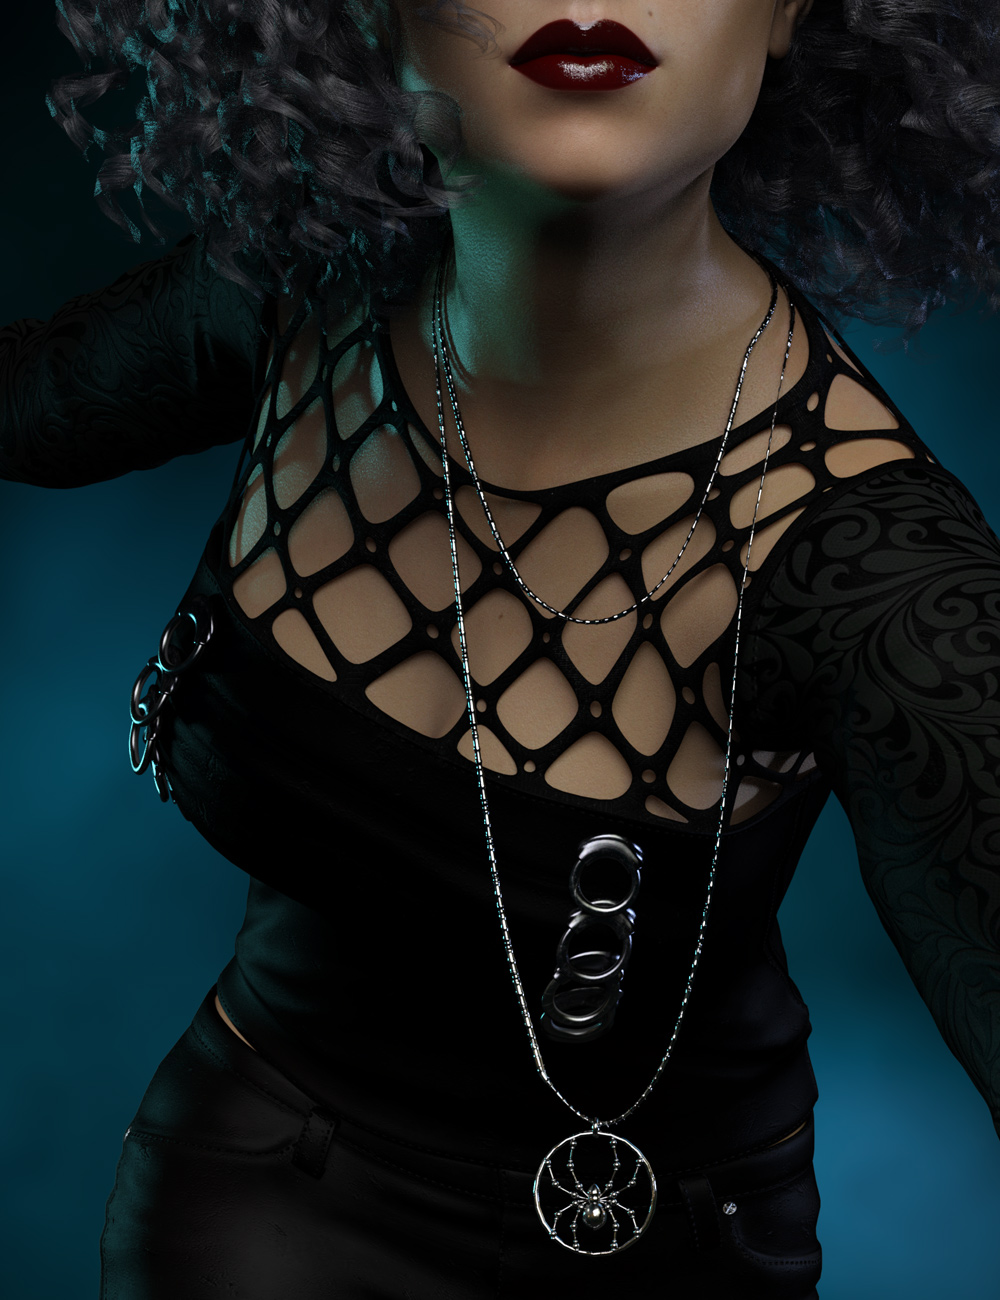 dForce Necklace Merchant Resource by: Mada, 3D Models by Daz 3D